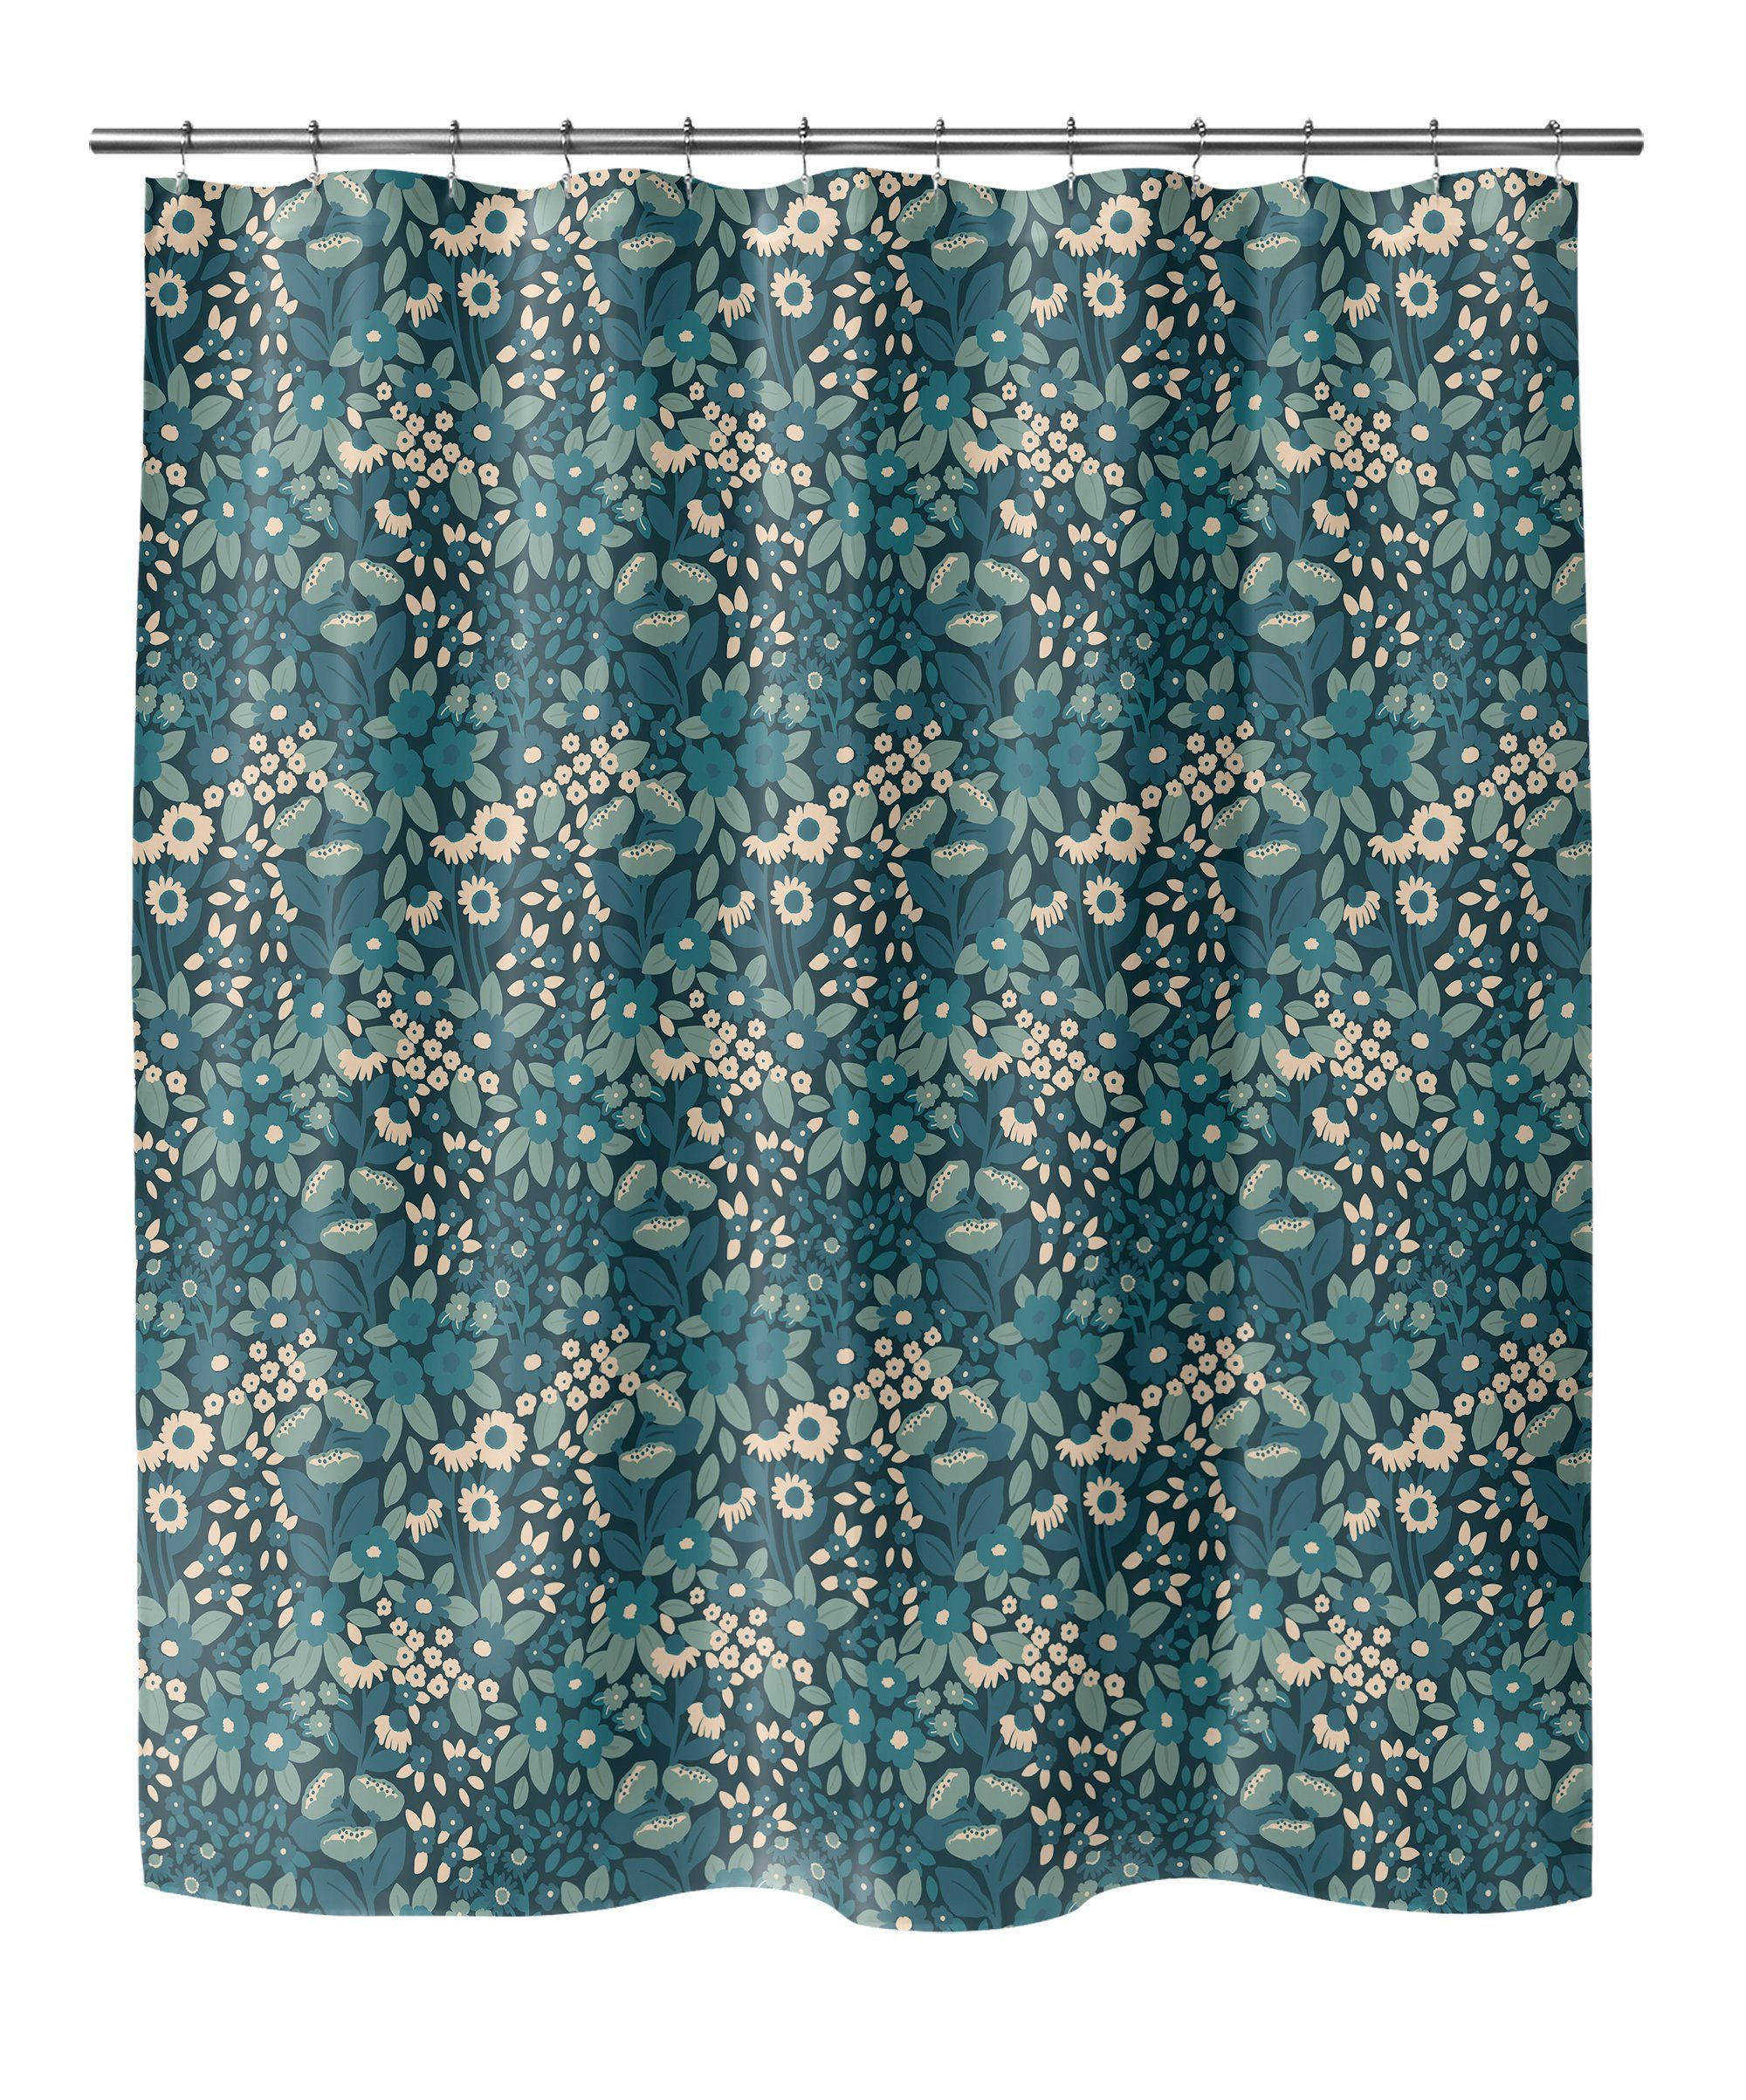 Photo of NATALIE Shower Curtain By Michelle Parascandolo – 70in x 72in